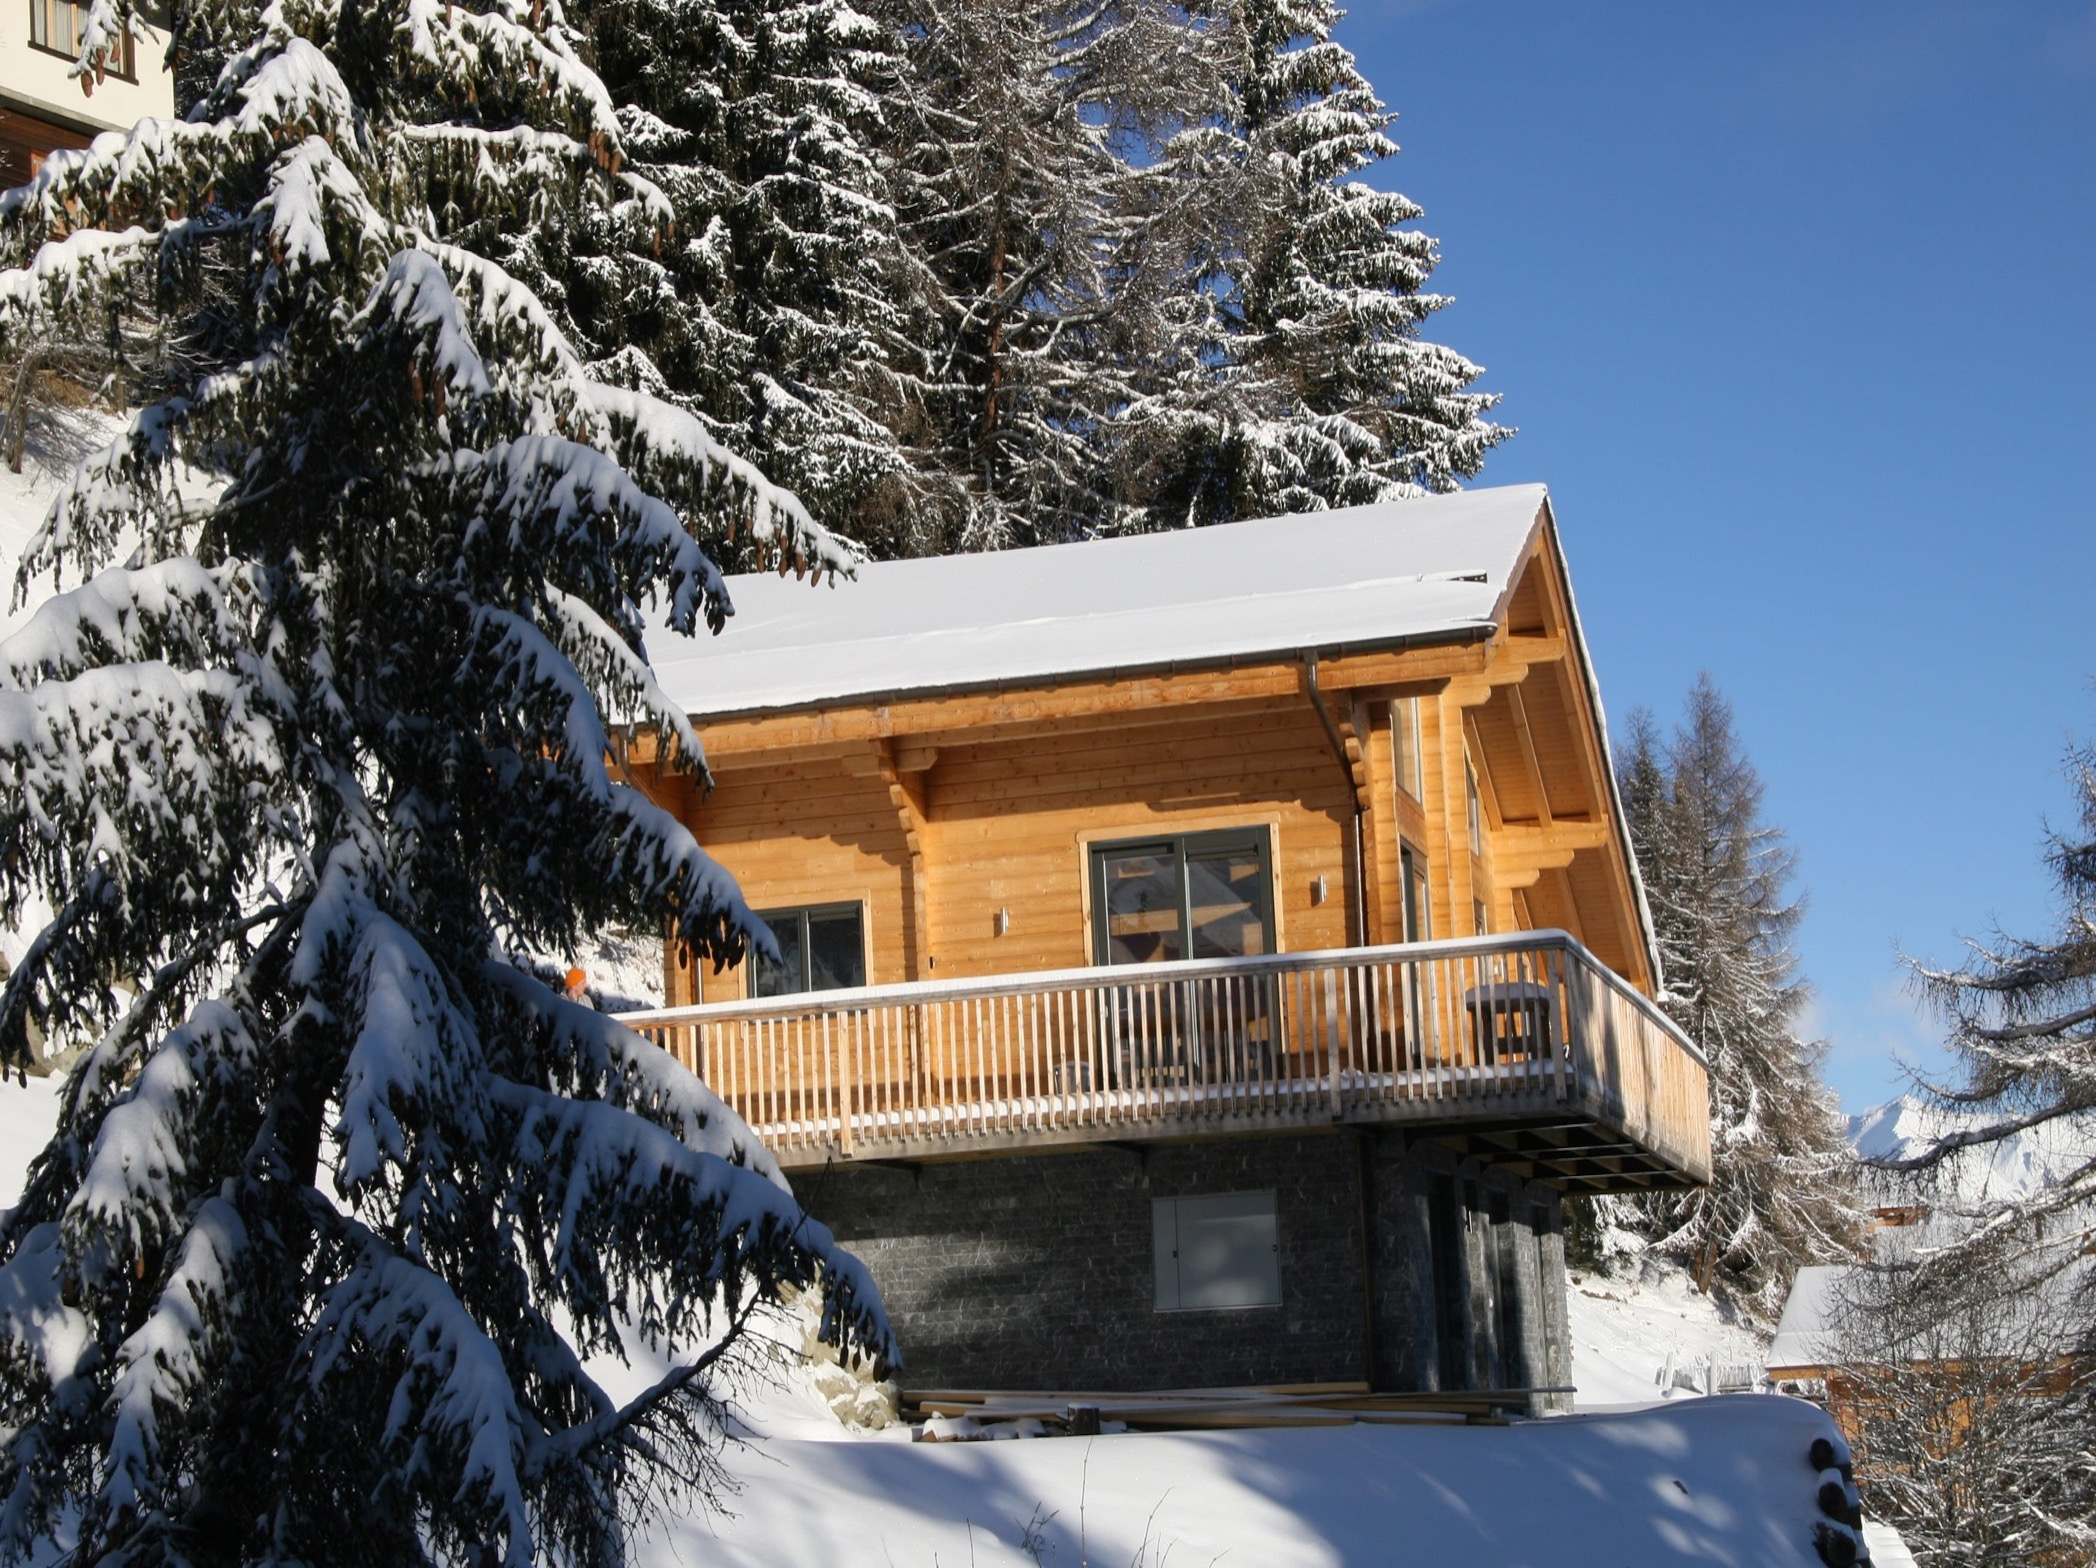 Ski Chalet for Rent Switzerland